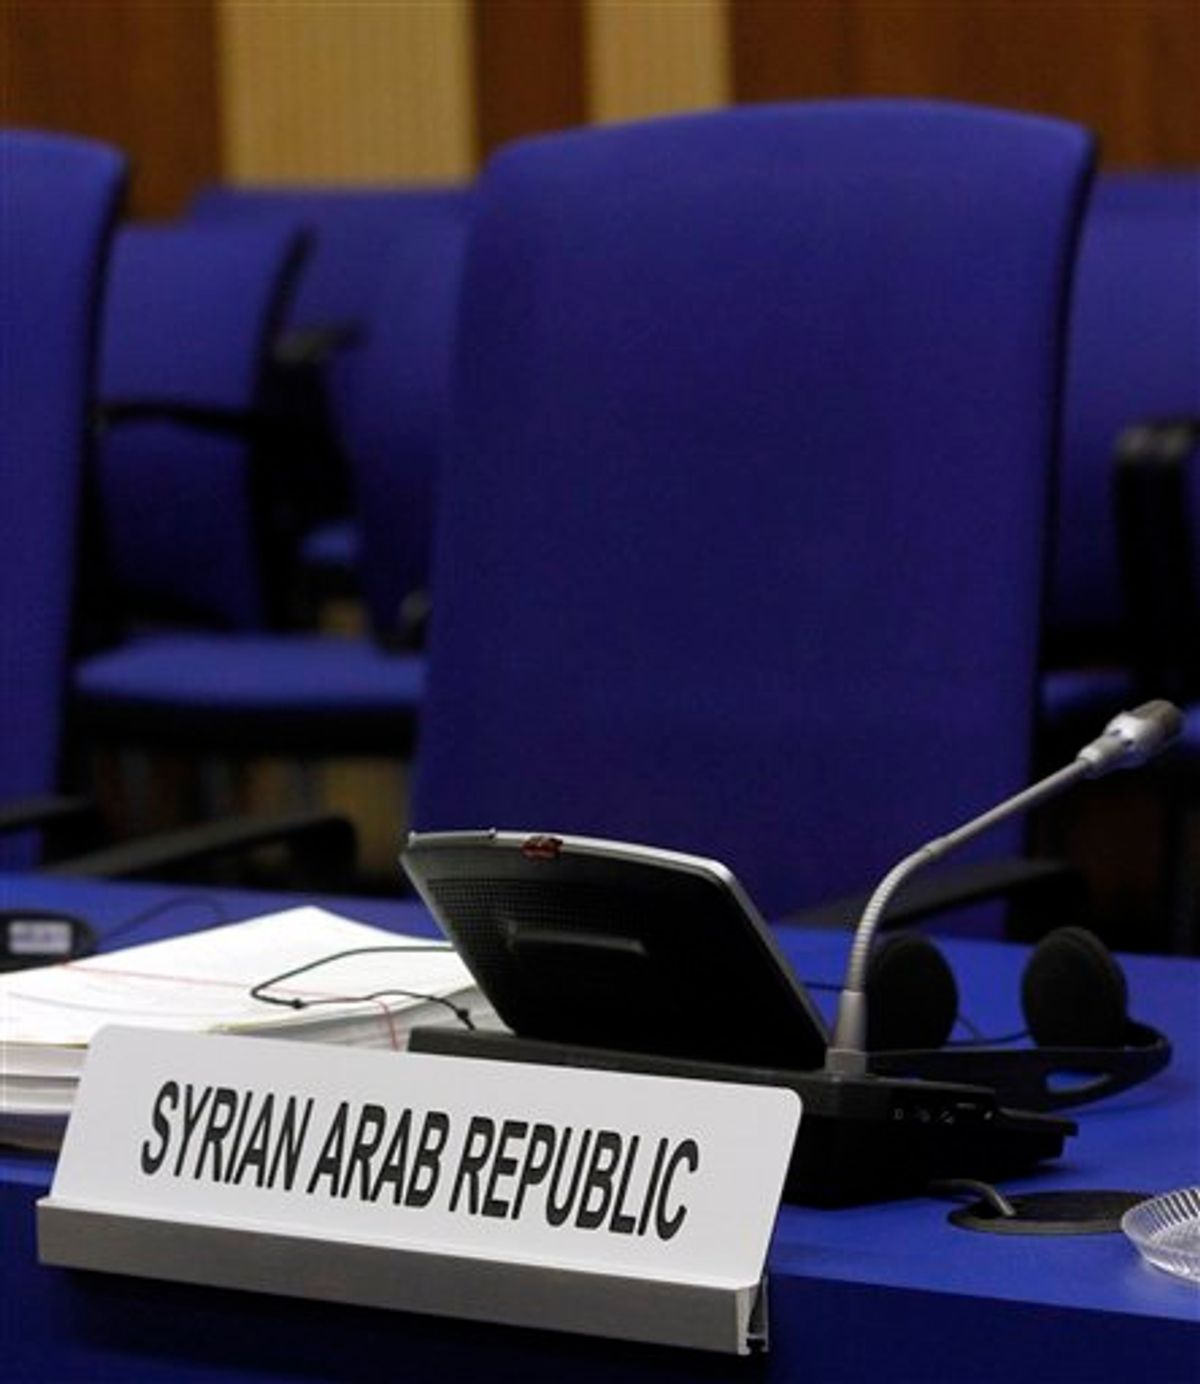 The empty chair of Syria's ambassador to Austria Bassam al-Sabbagh at the start of International Atomic Energy Agency, IAEA's board of governors meeting at the International Center, in Vienna, Austria, on Wednesday, June 8, 2011. (AP Photo/Ronald Zak) (AP)